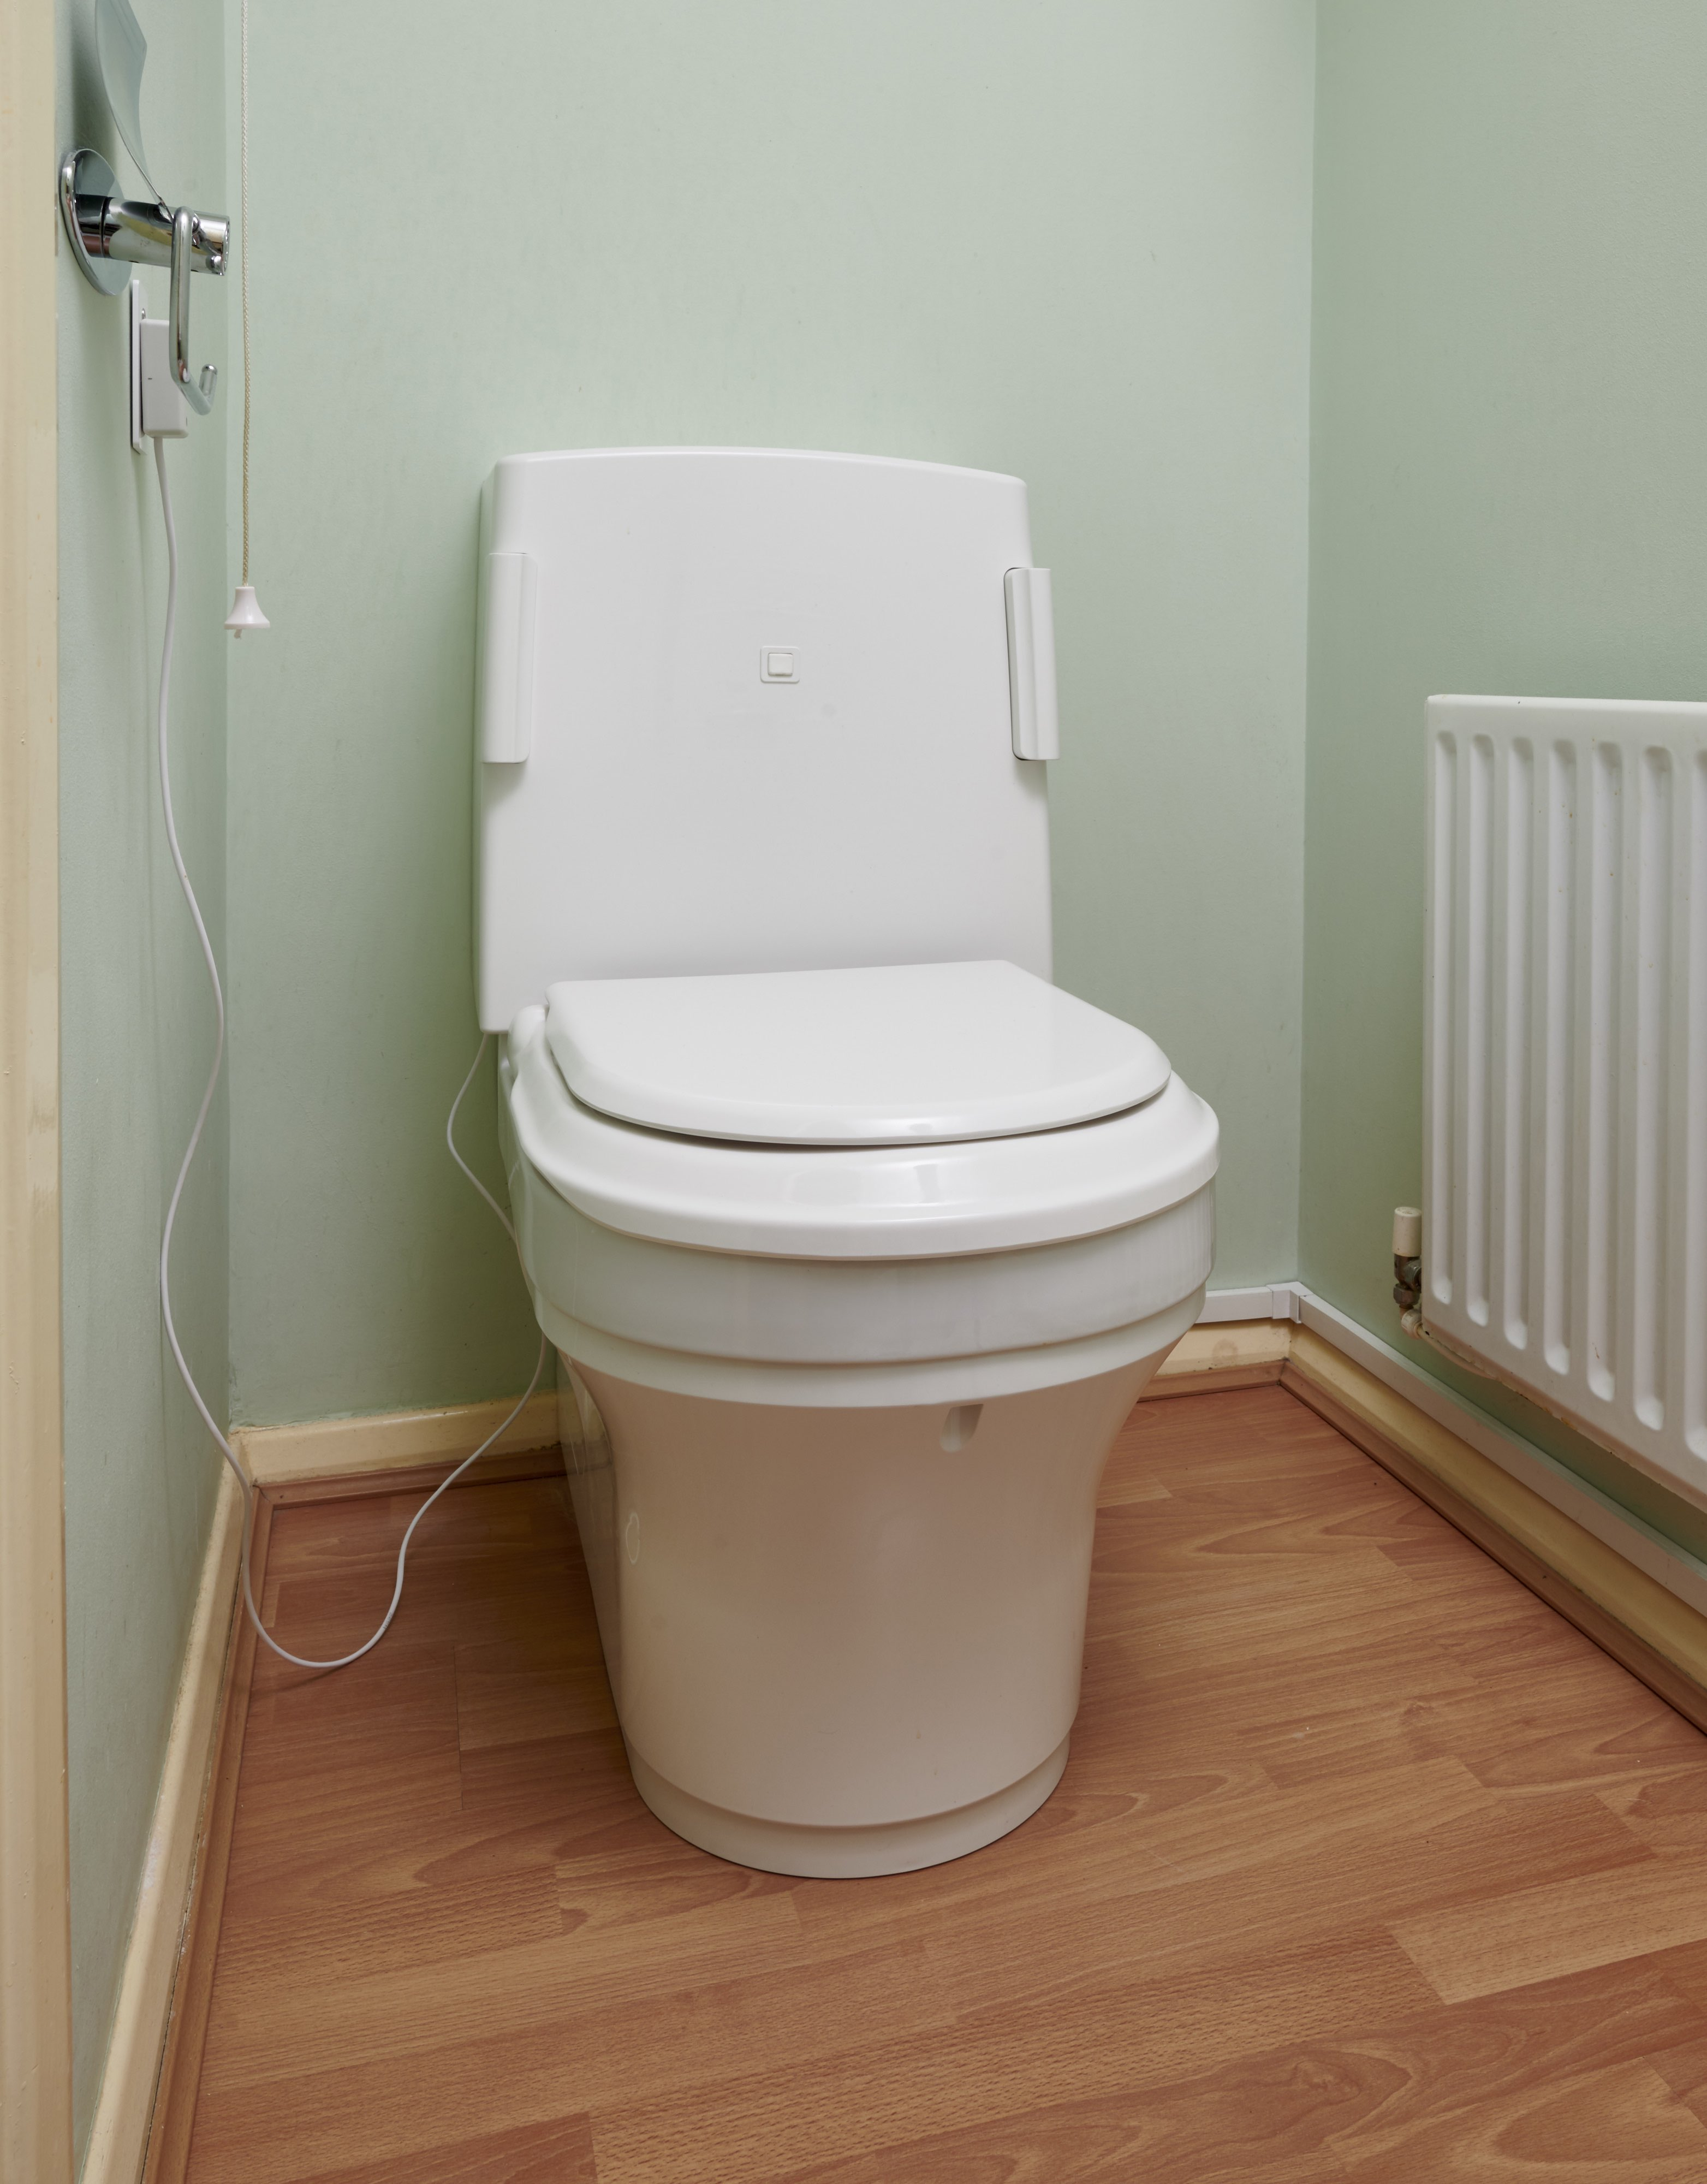 A Closomat accessible toilet